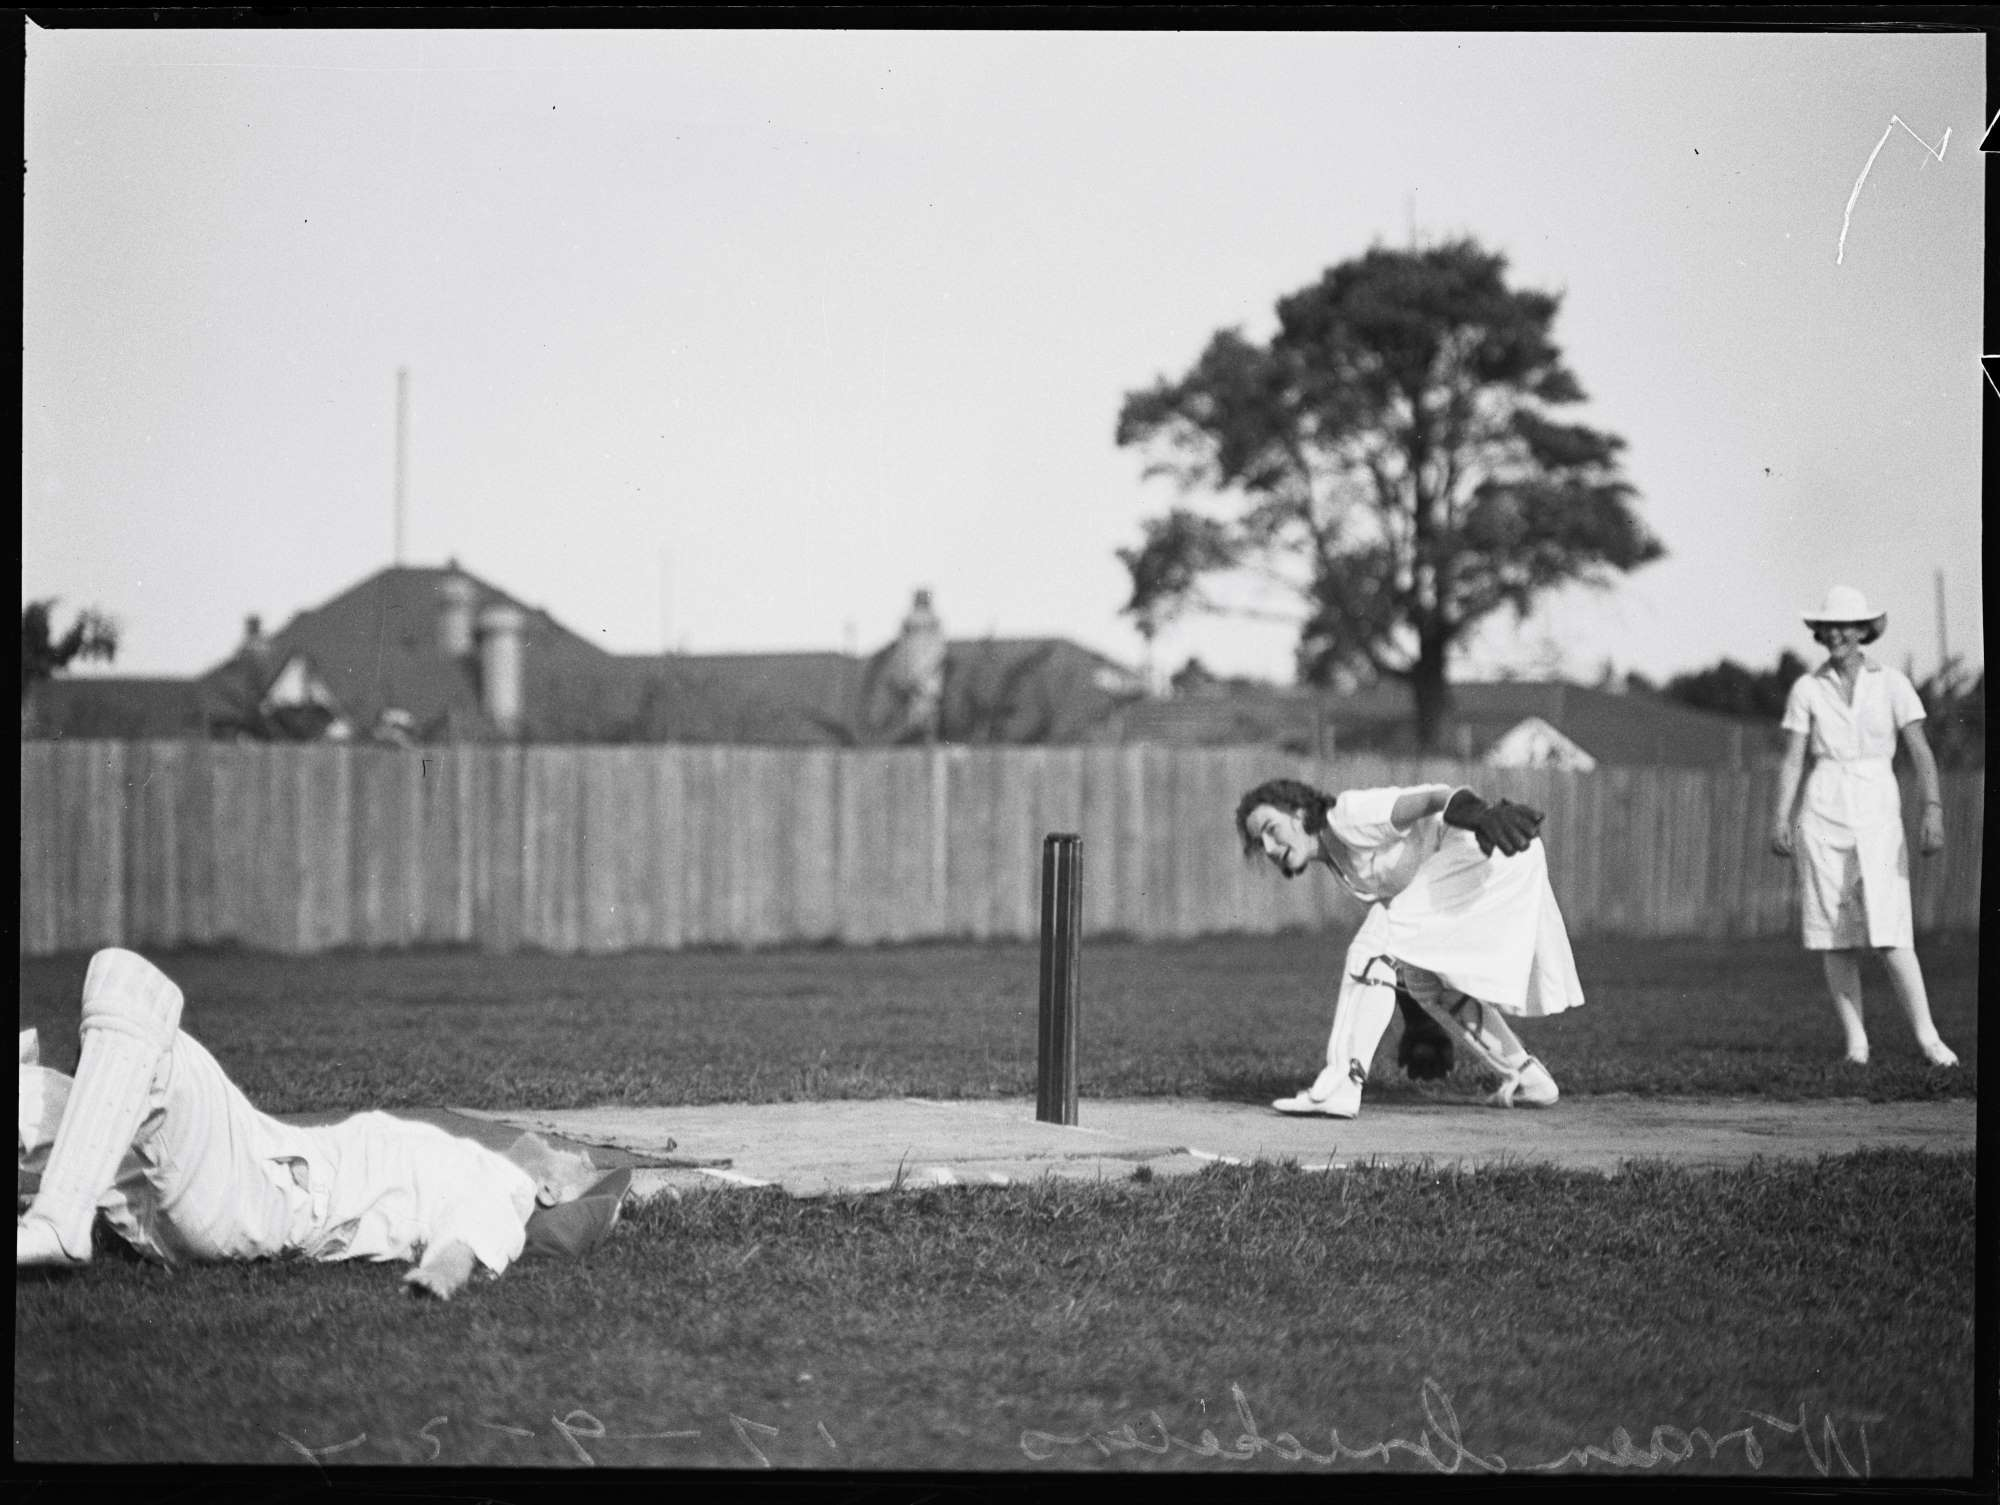 Female cricketer lying on ground as another cricketer stands at the stumps